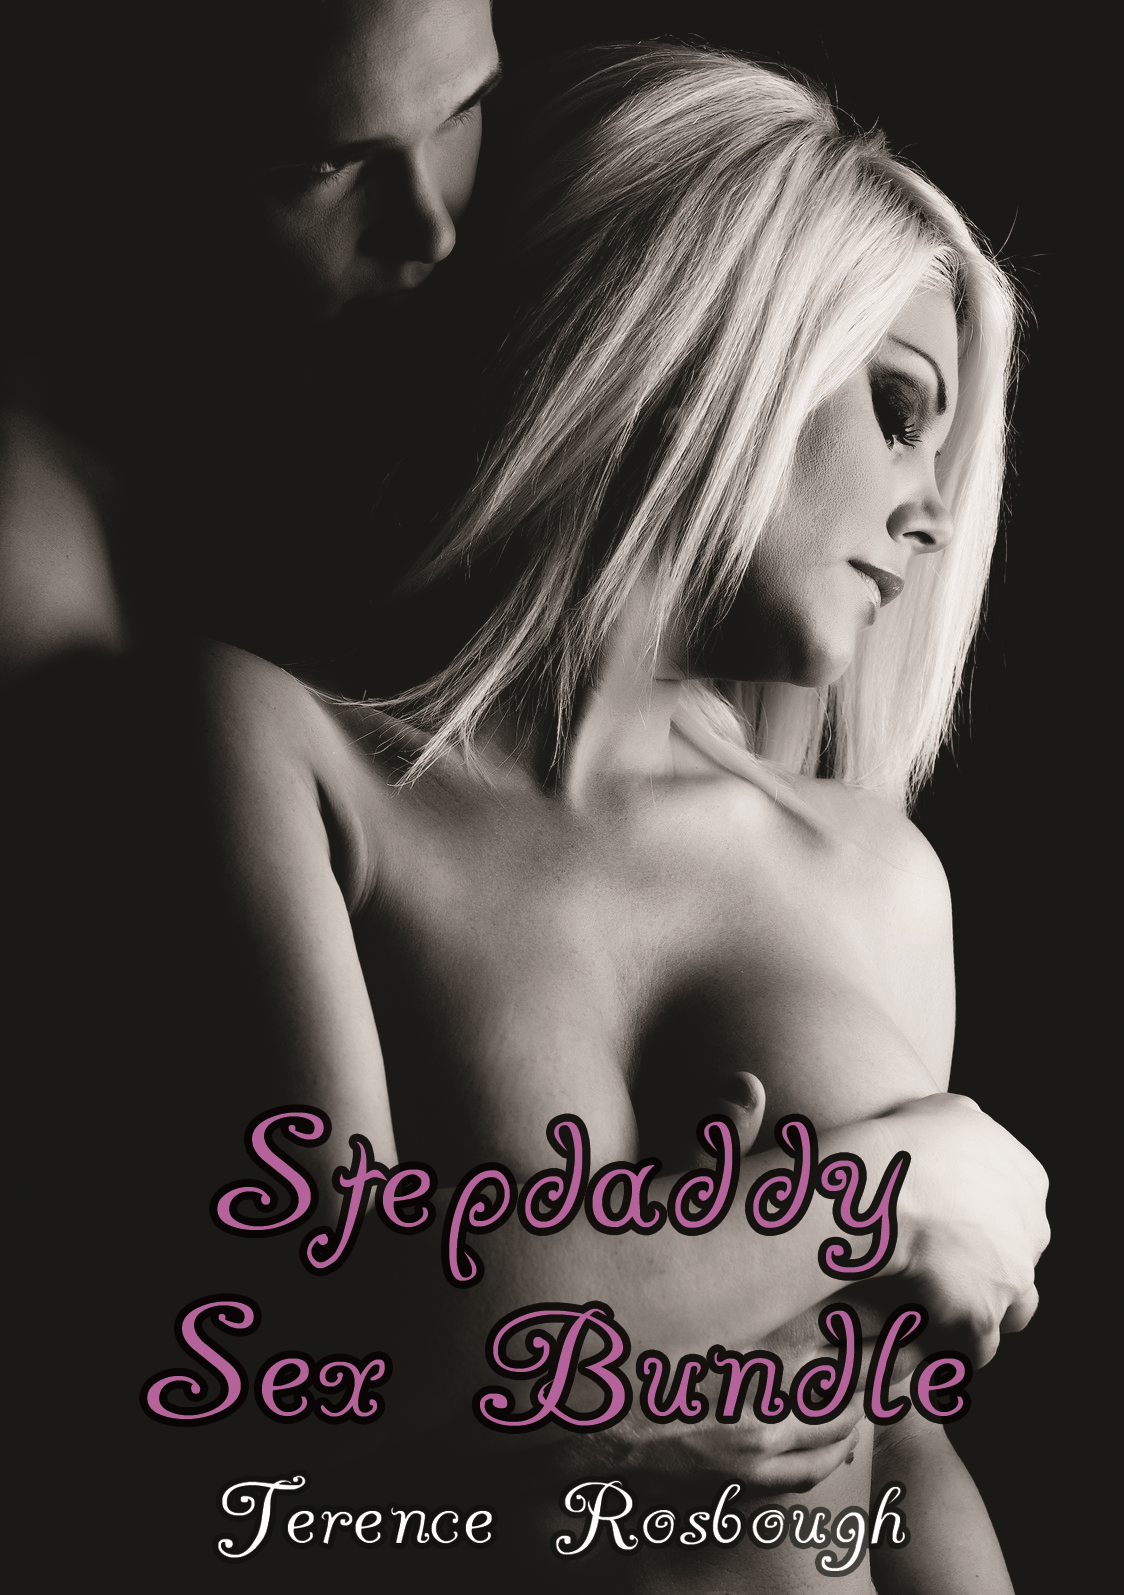 Stepdaddy Sex Bundle (M/f Pseudo-Incest Erotica Bundle)